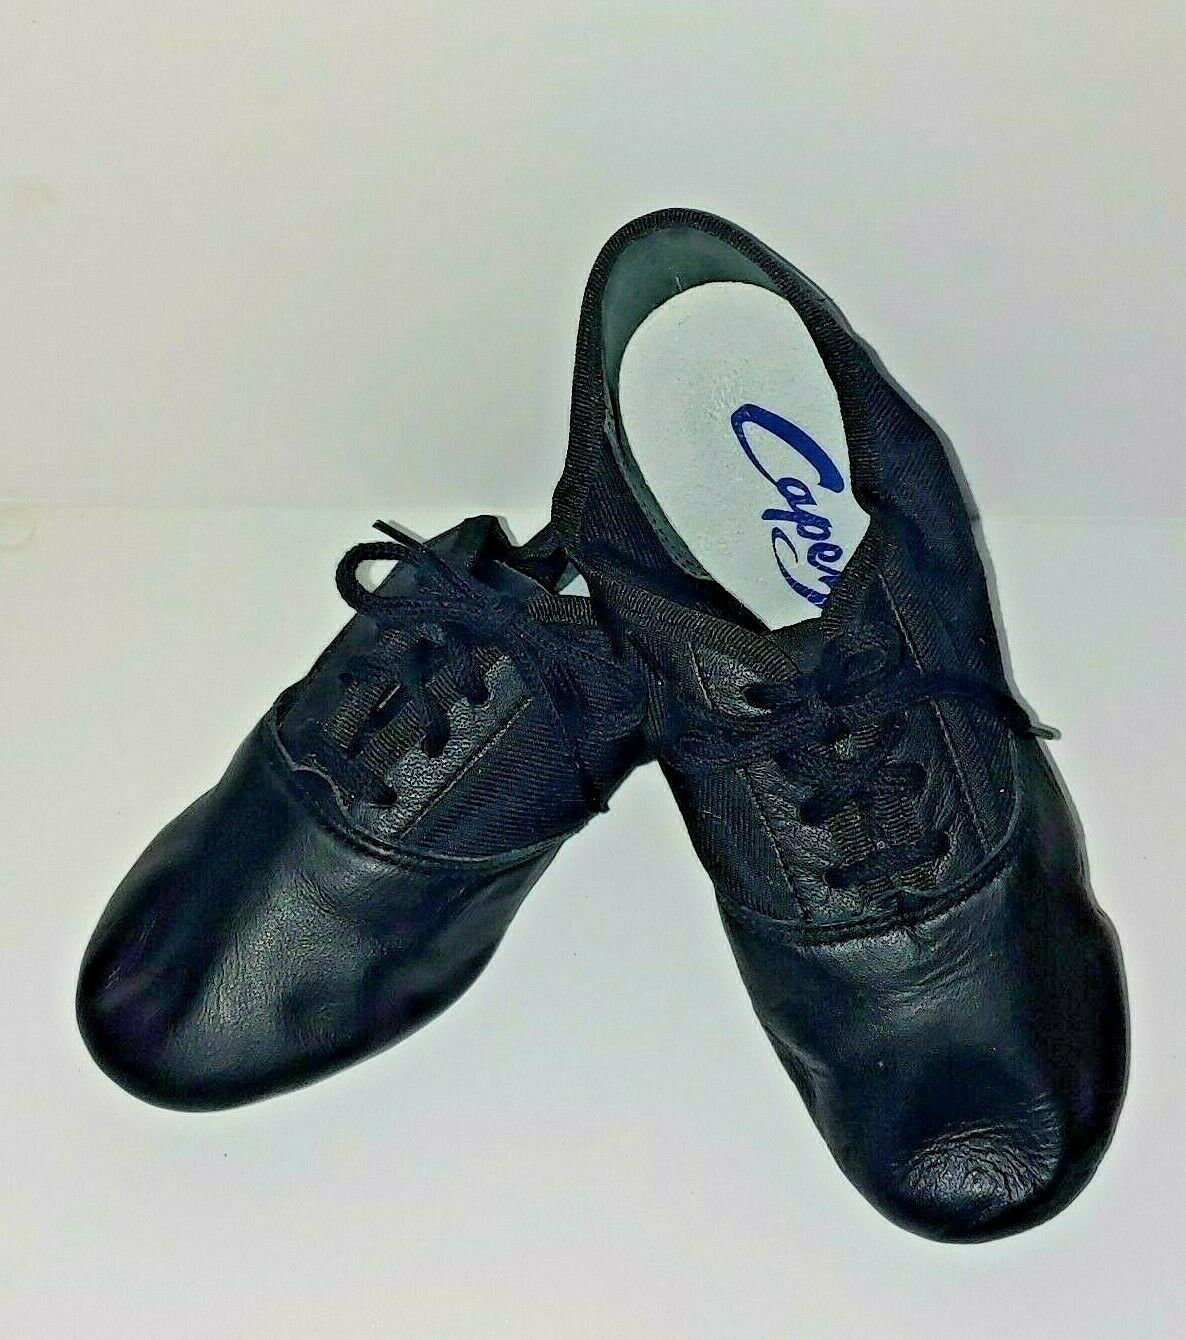 Capezio 358C Black Lace Split-Sole Jazz Shoe Child Size 1M 1 M